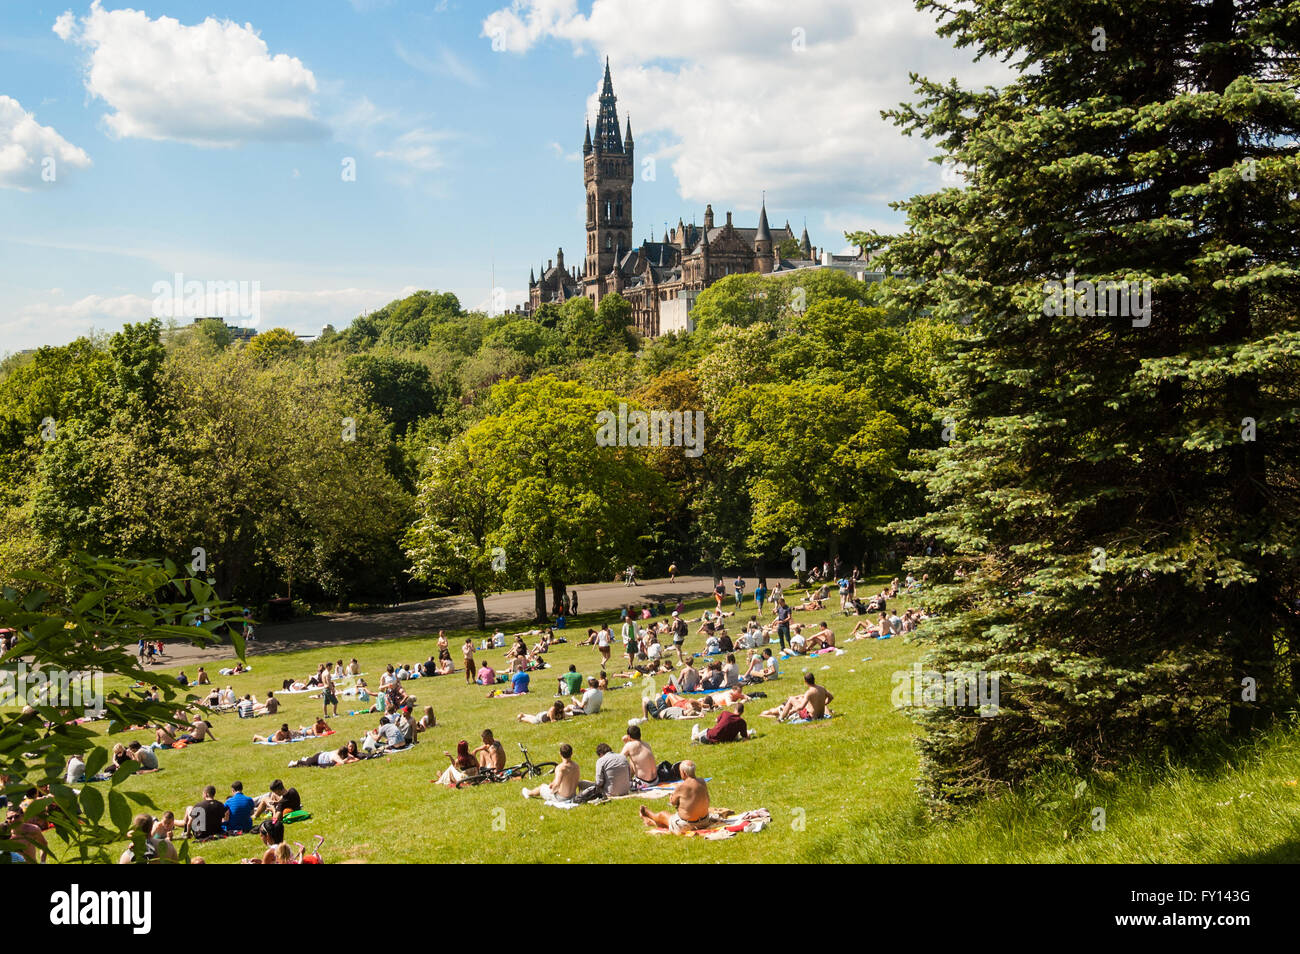 View of Kelvingrove Park full of people enjoying the Scottish summer with main building of Glasgow University on - Stock Image